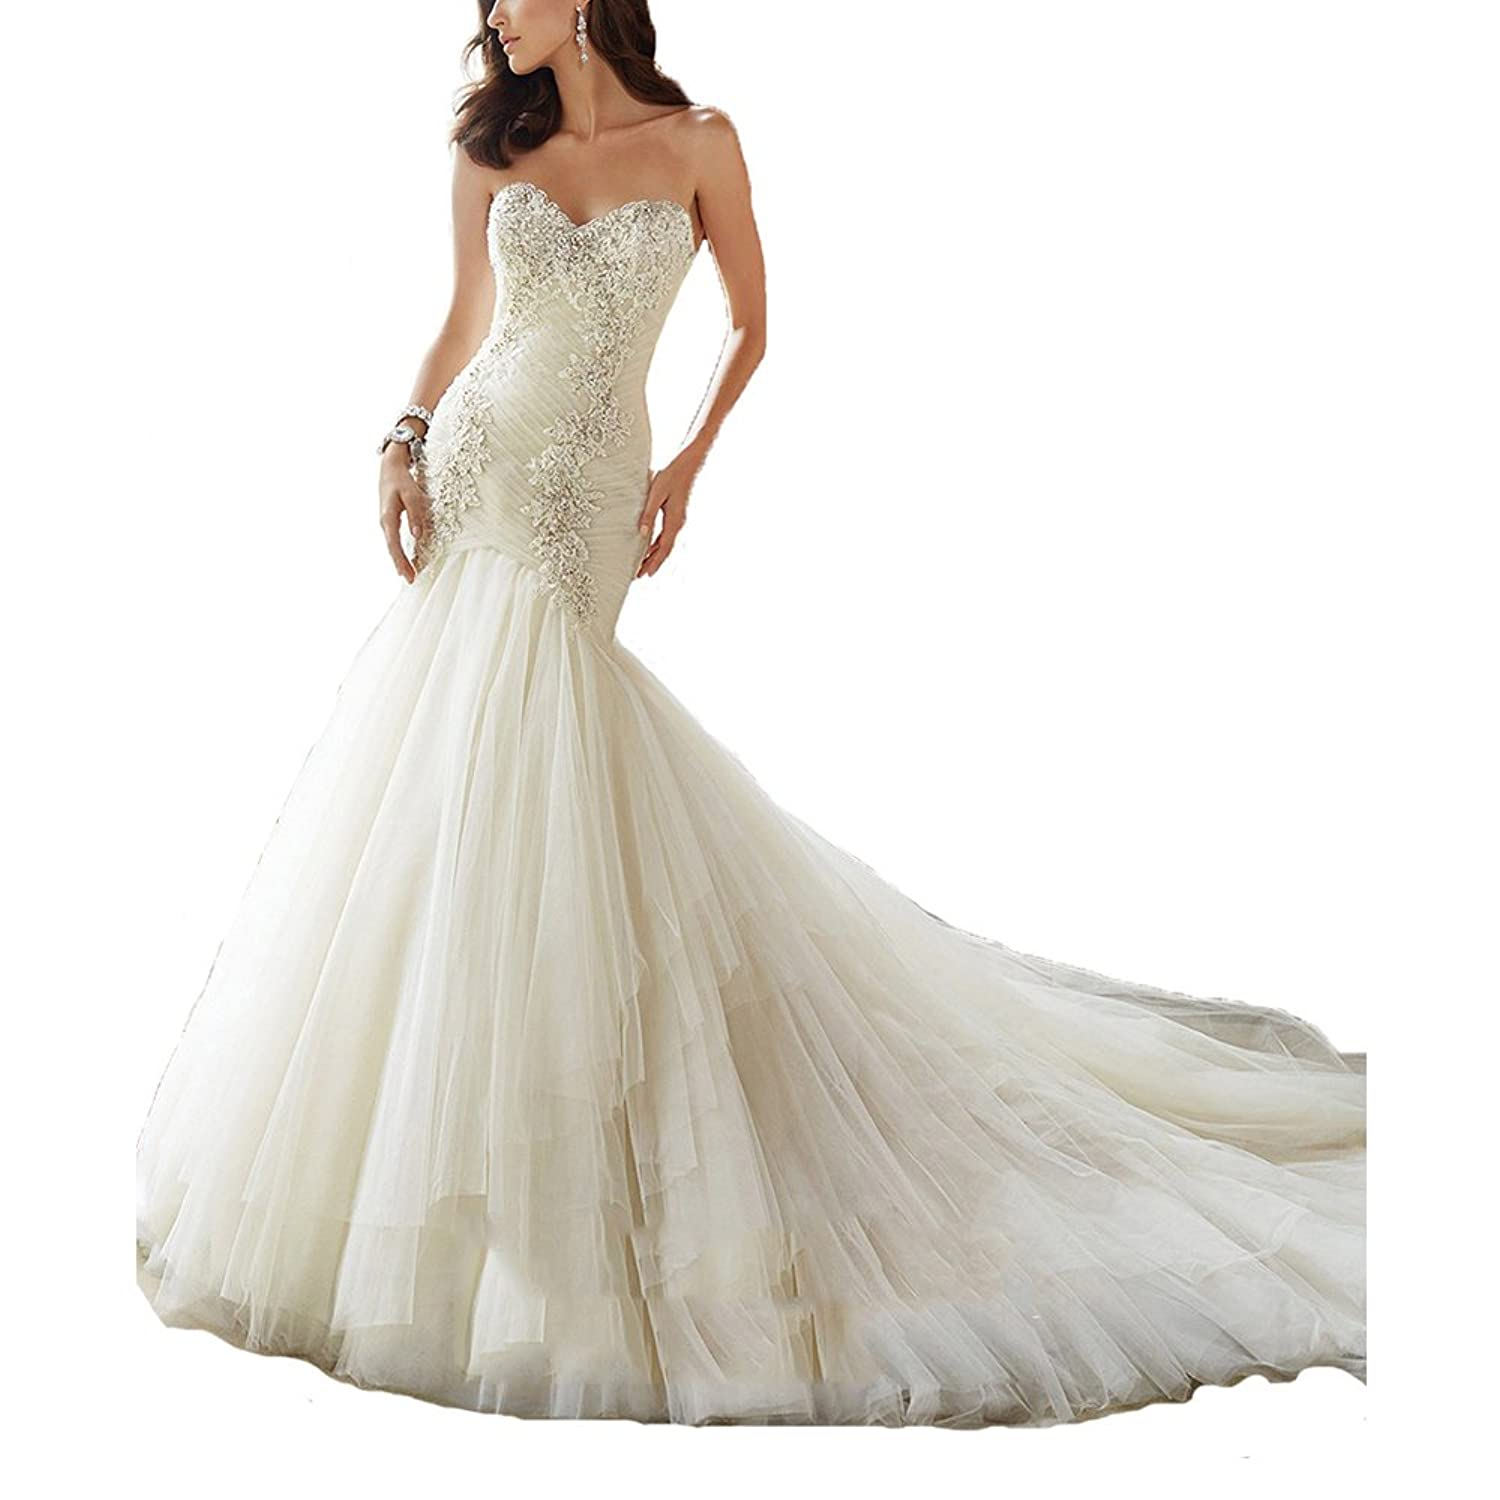 AbaoWedding Women's Lace Applique Strapless Sweetheart Chapel Train Wedding Dress